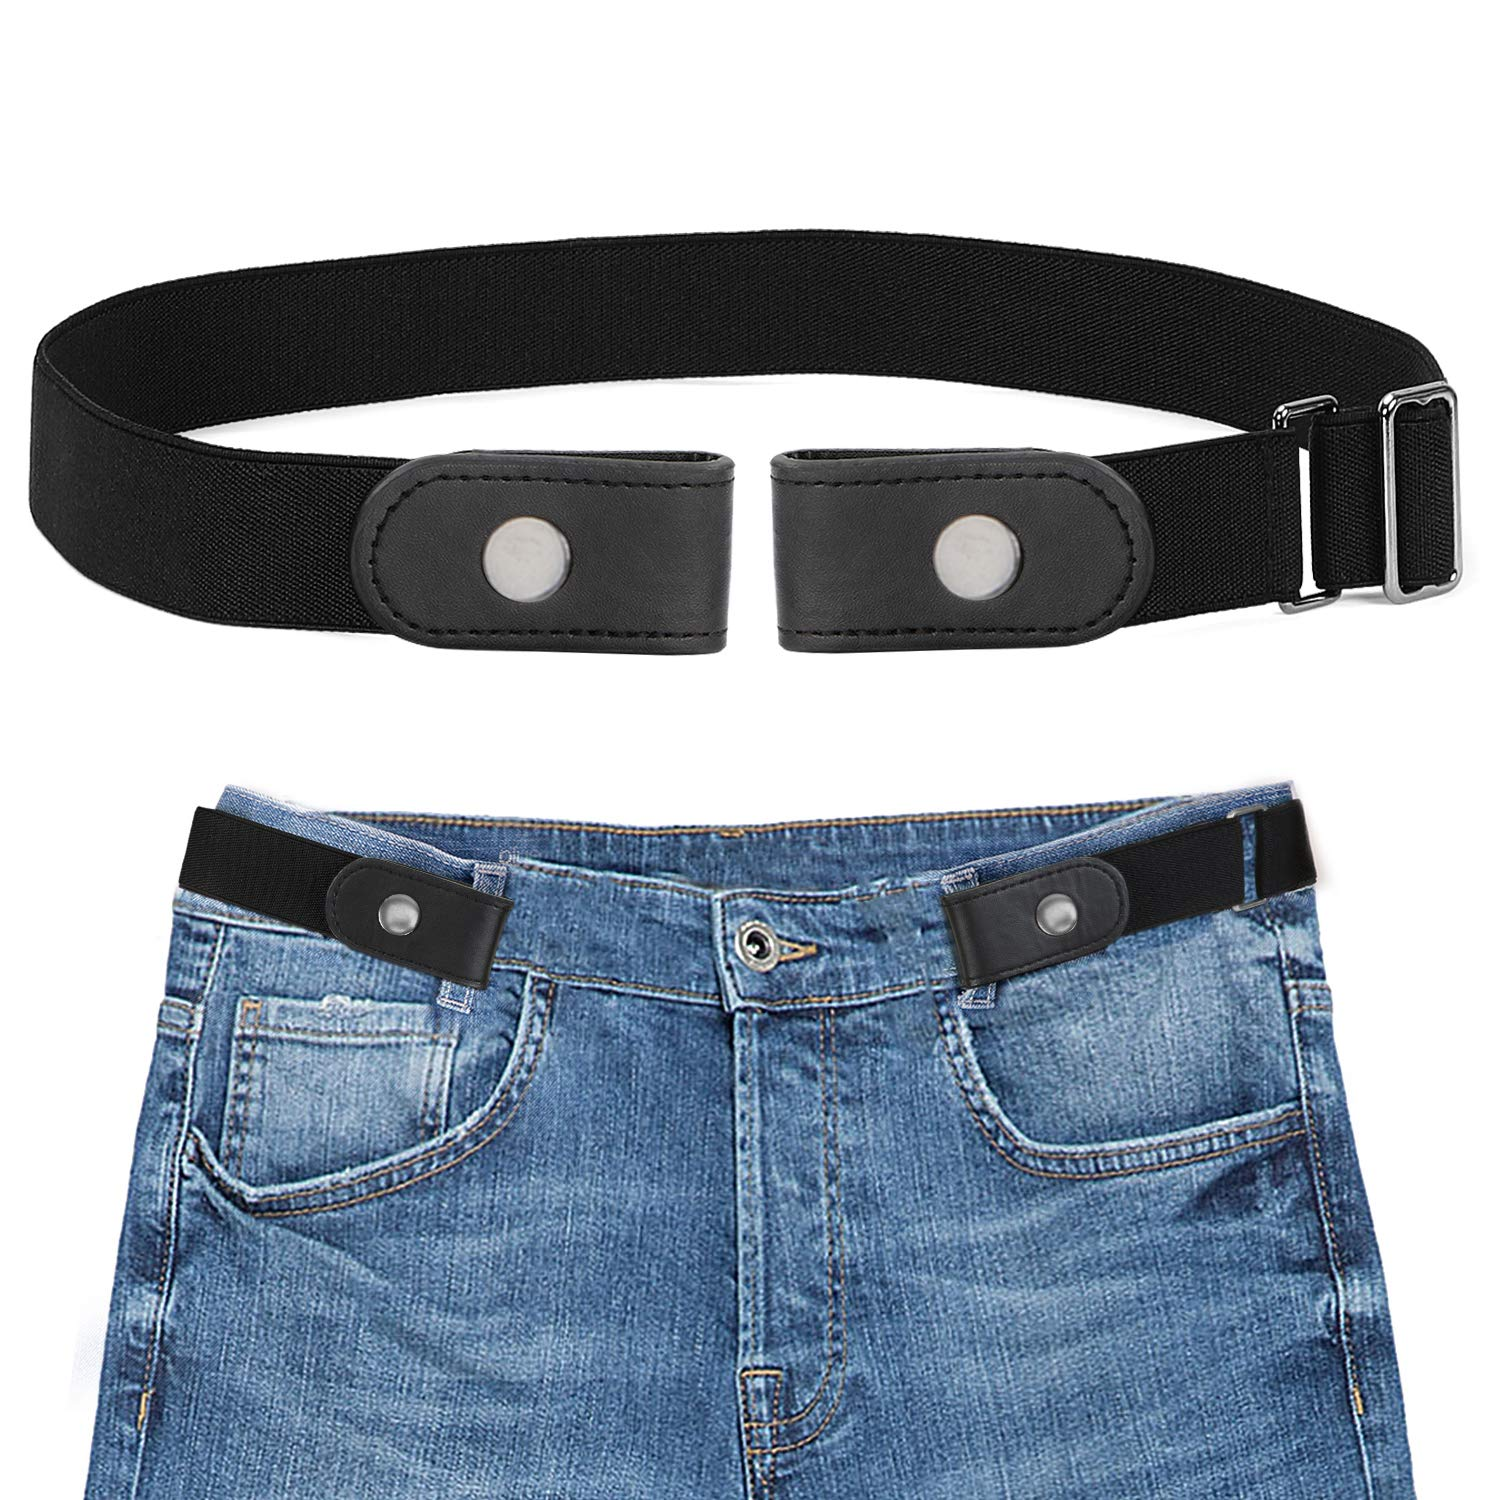 Black 2 Bucklefree Elastic Women Belt for Jeans without Buckle, SANSTHS Comfortable Invisible Belt No Bulge No Hassle